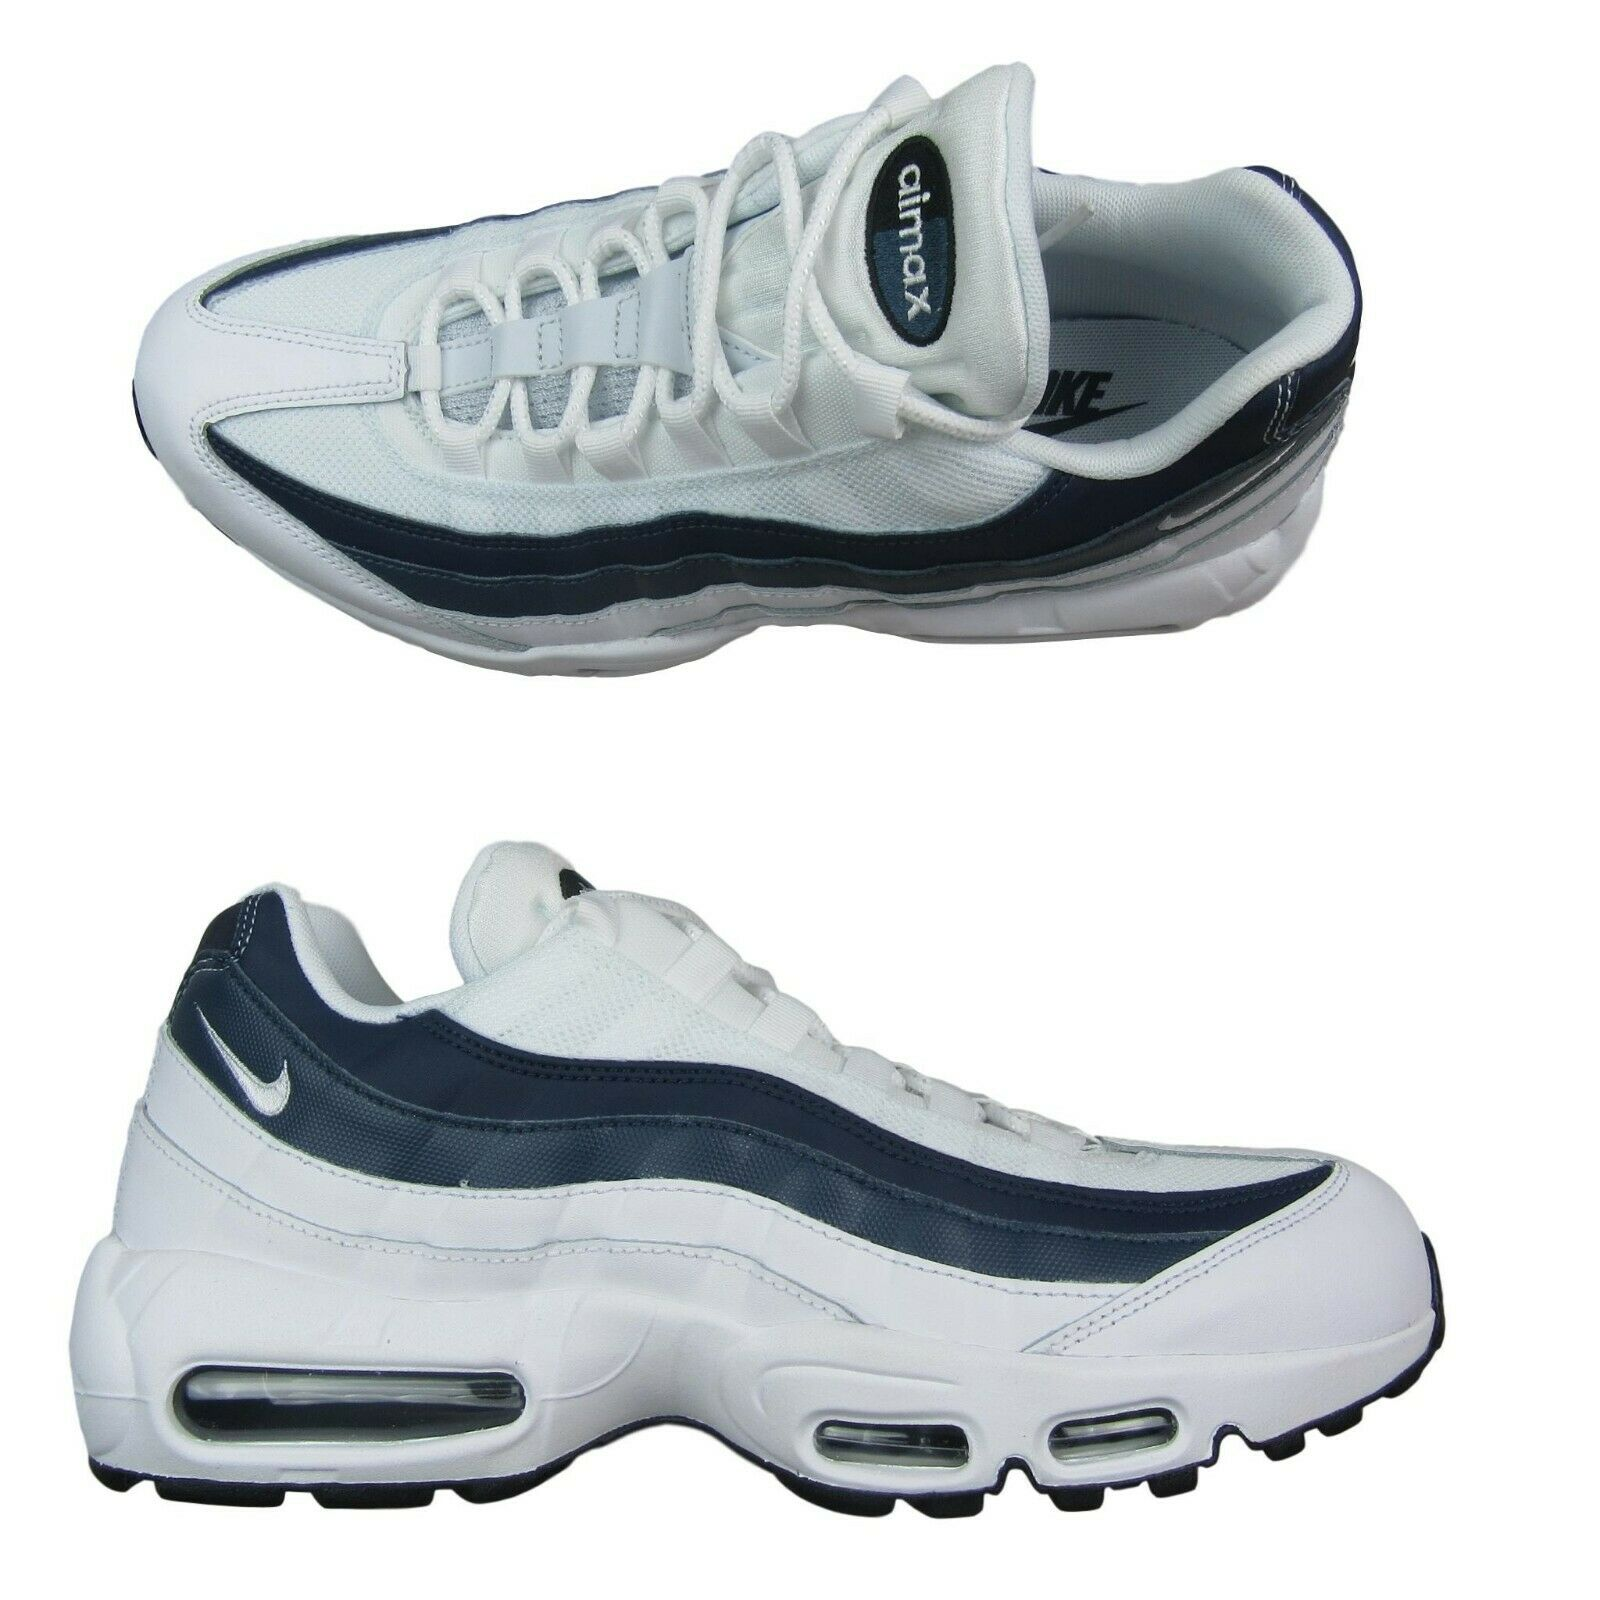 new style c1d0e 1b734 nike-air-max-95-essential-shoes-size-10-